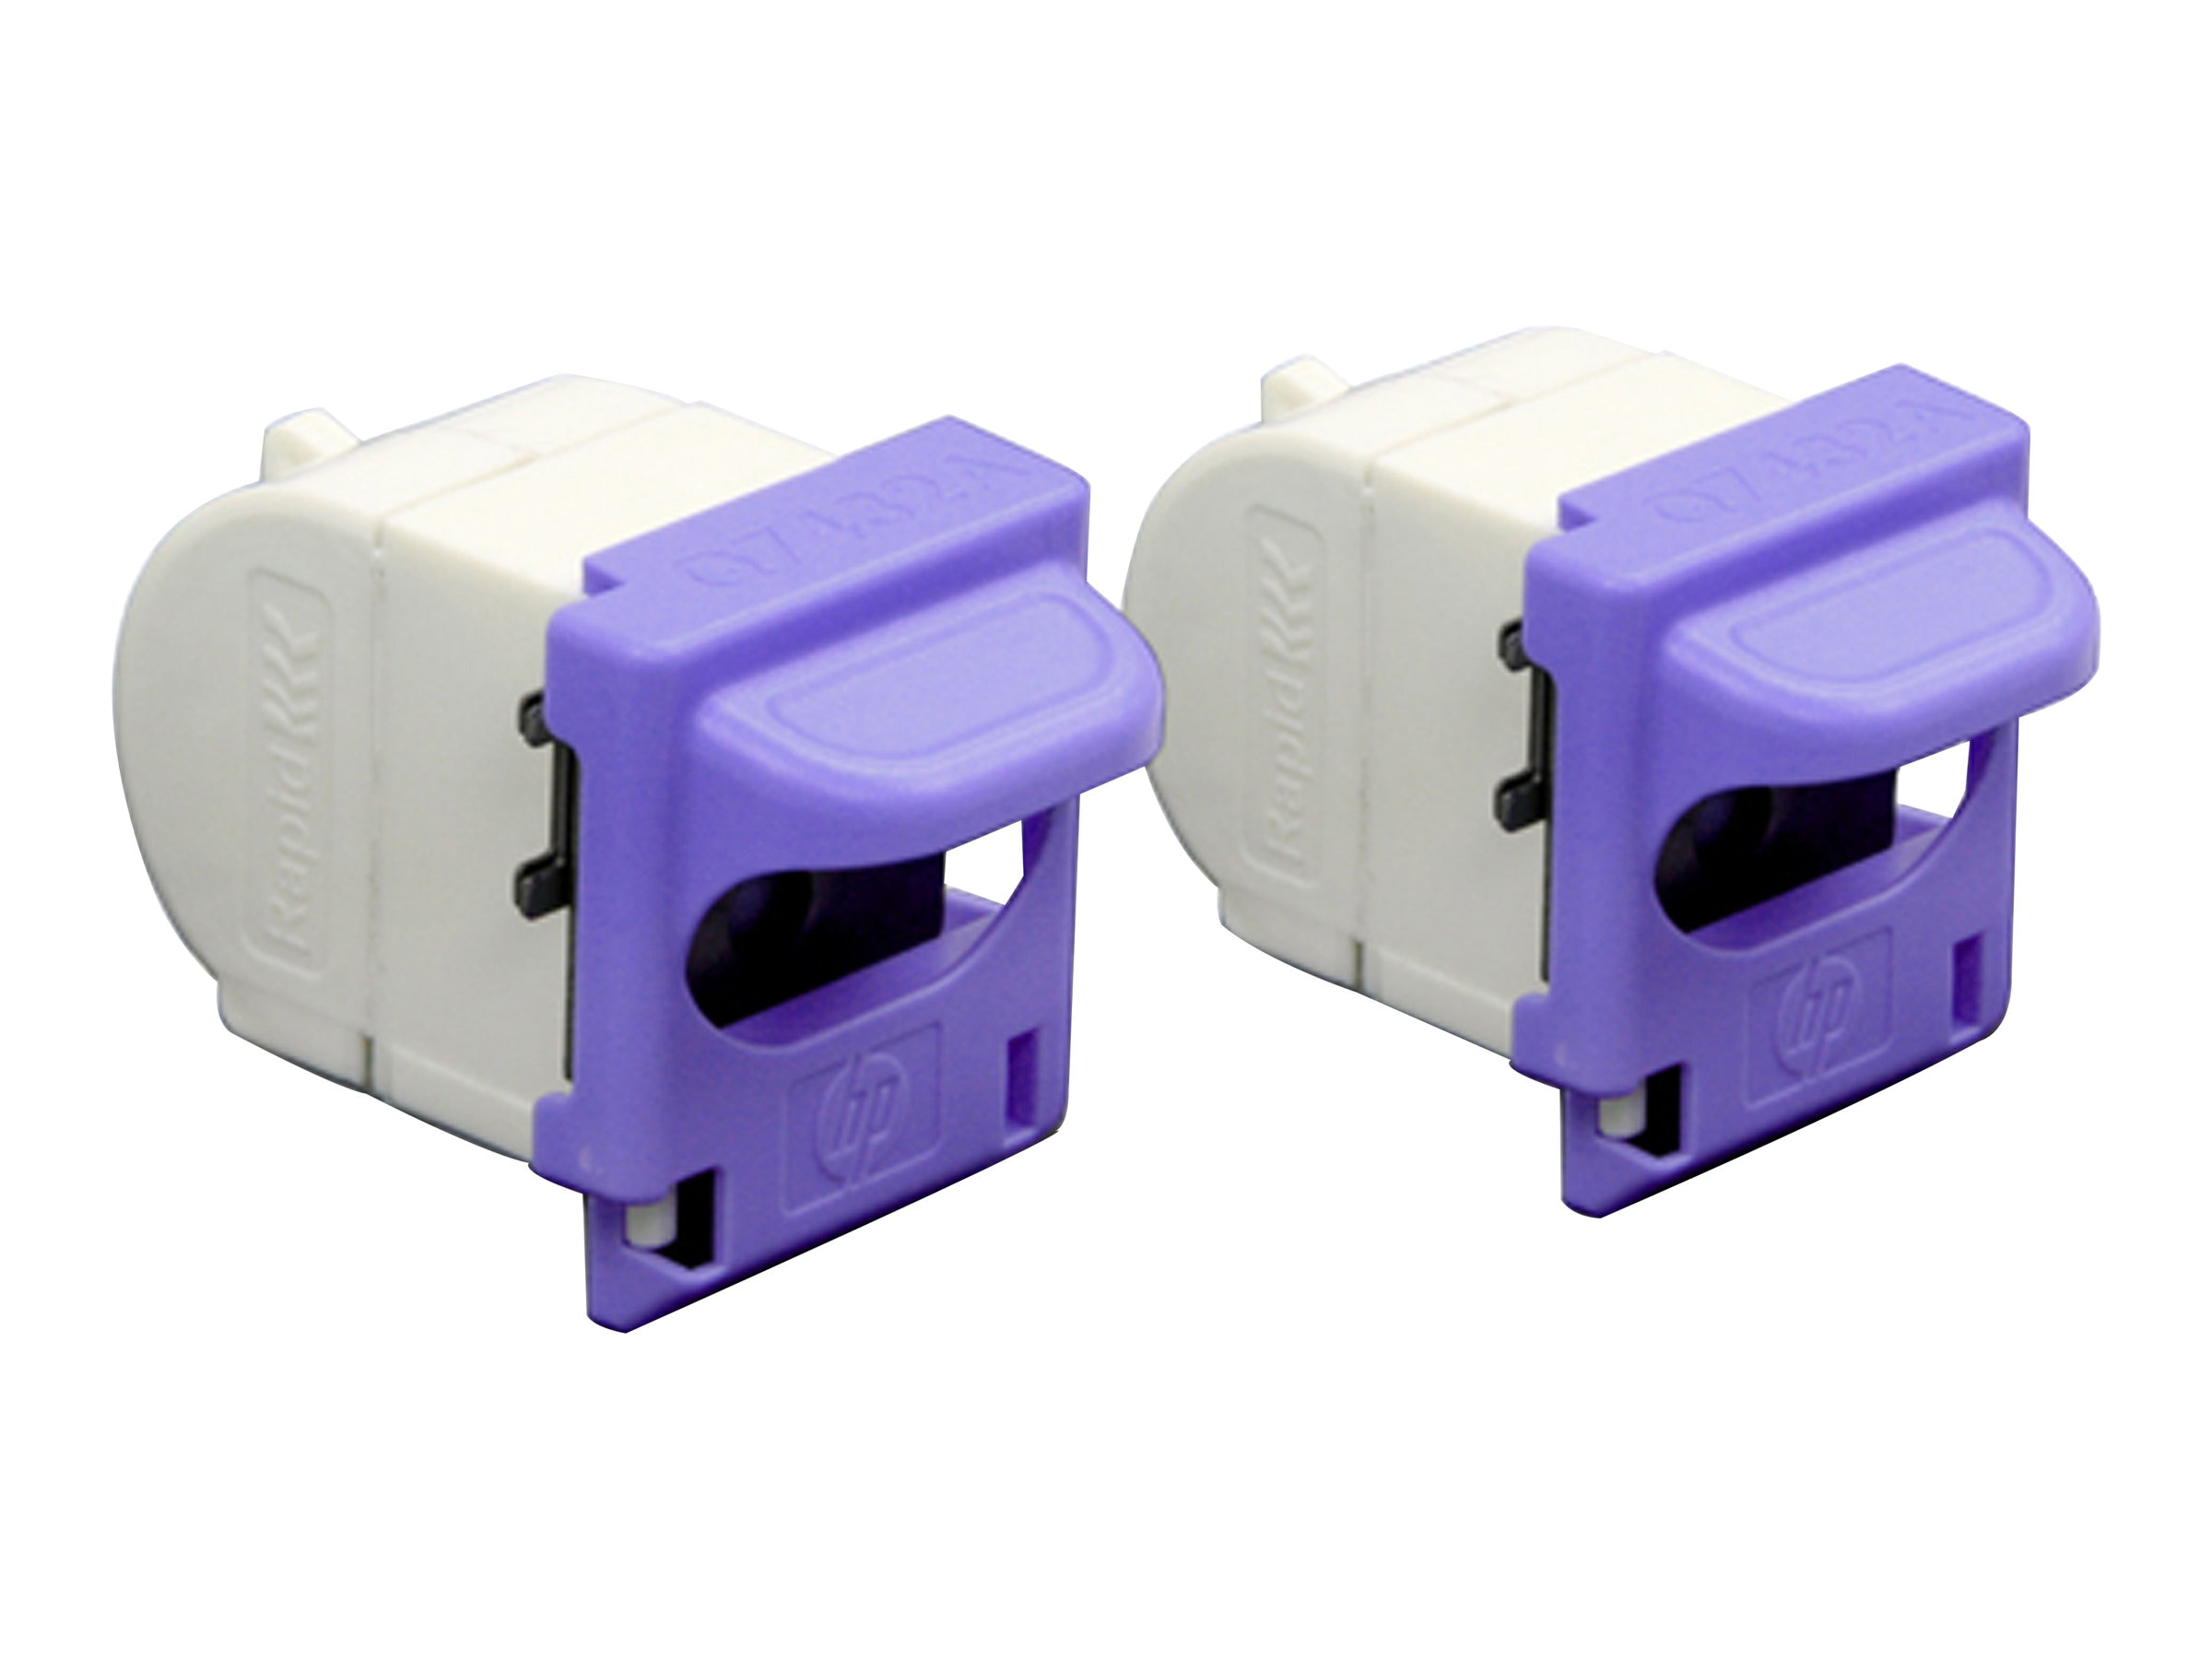 HP Staple Cartridge, 2 Pack, Q7432A, 7782720, Office Supplies